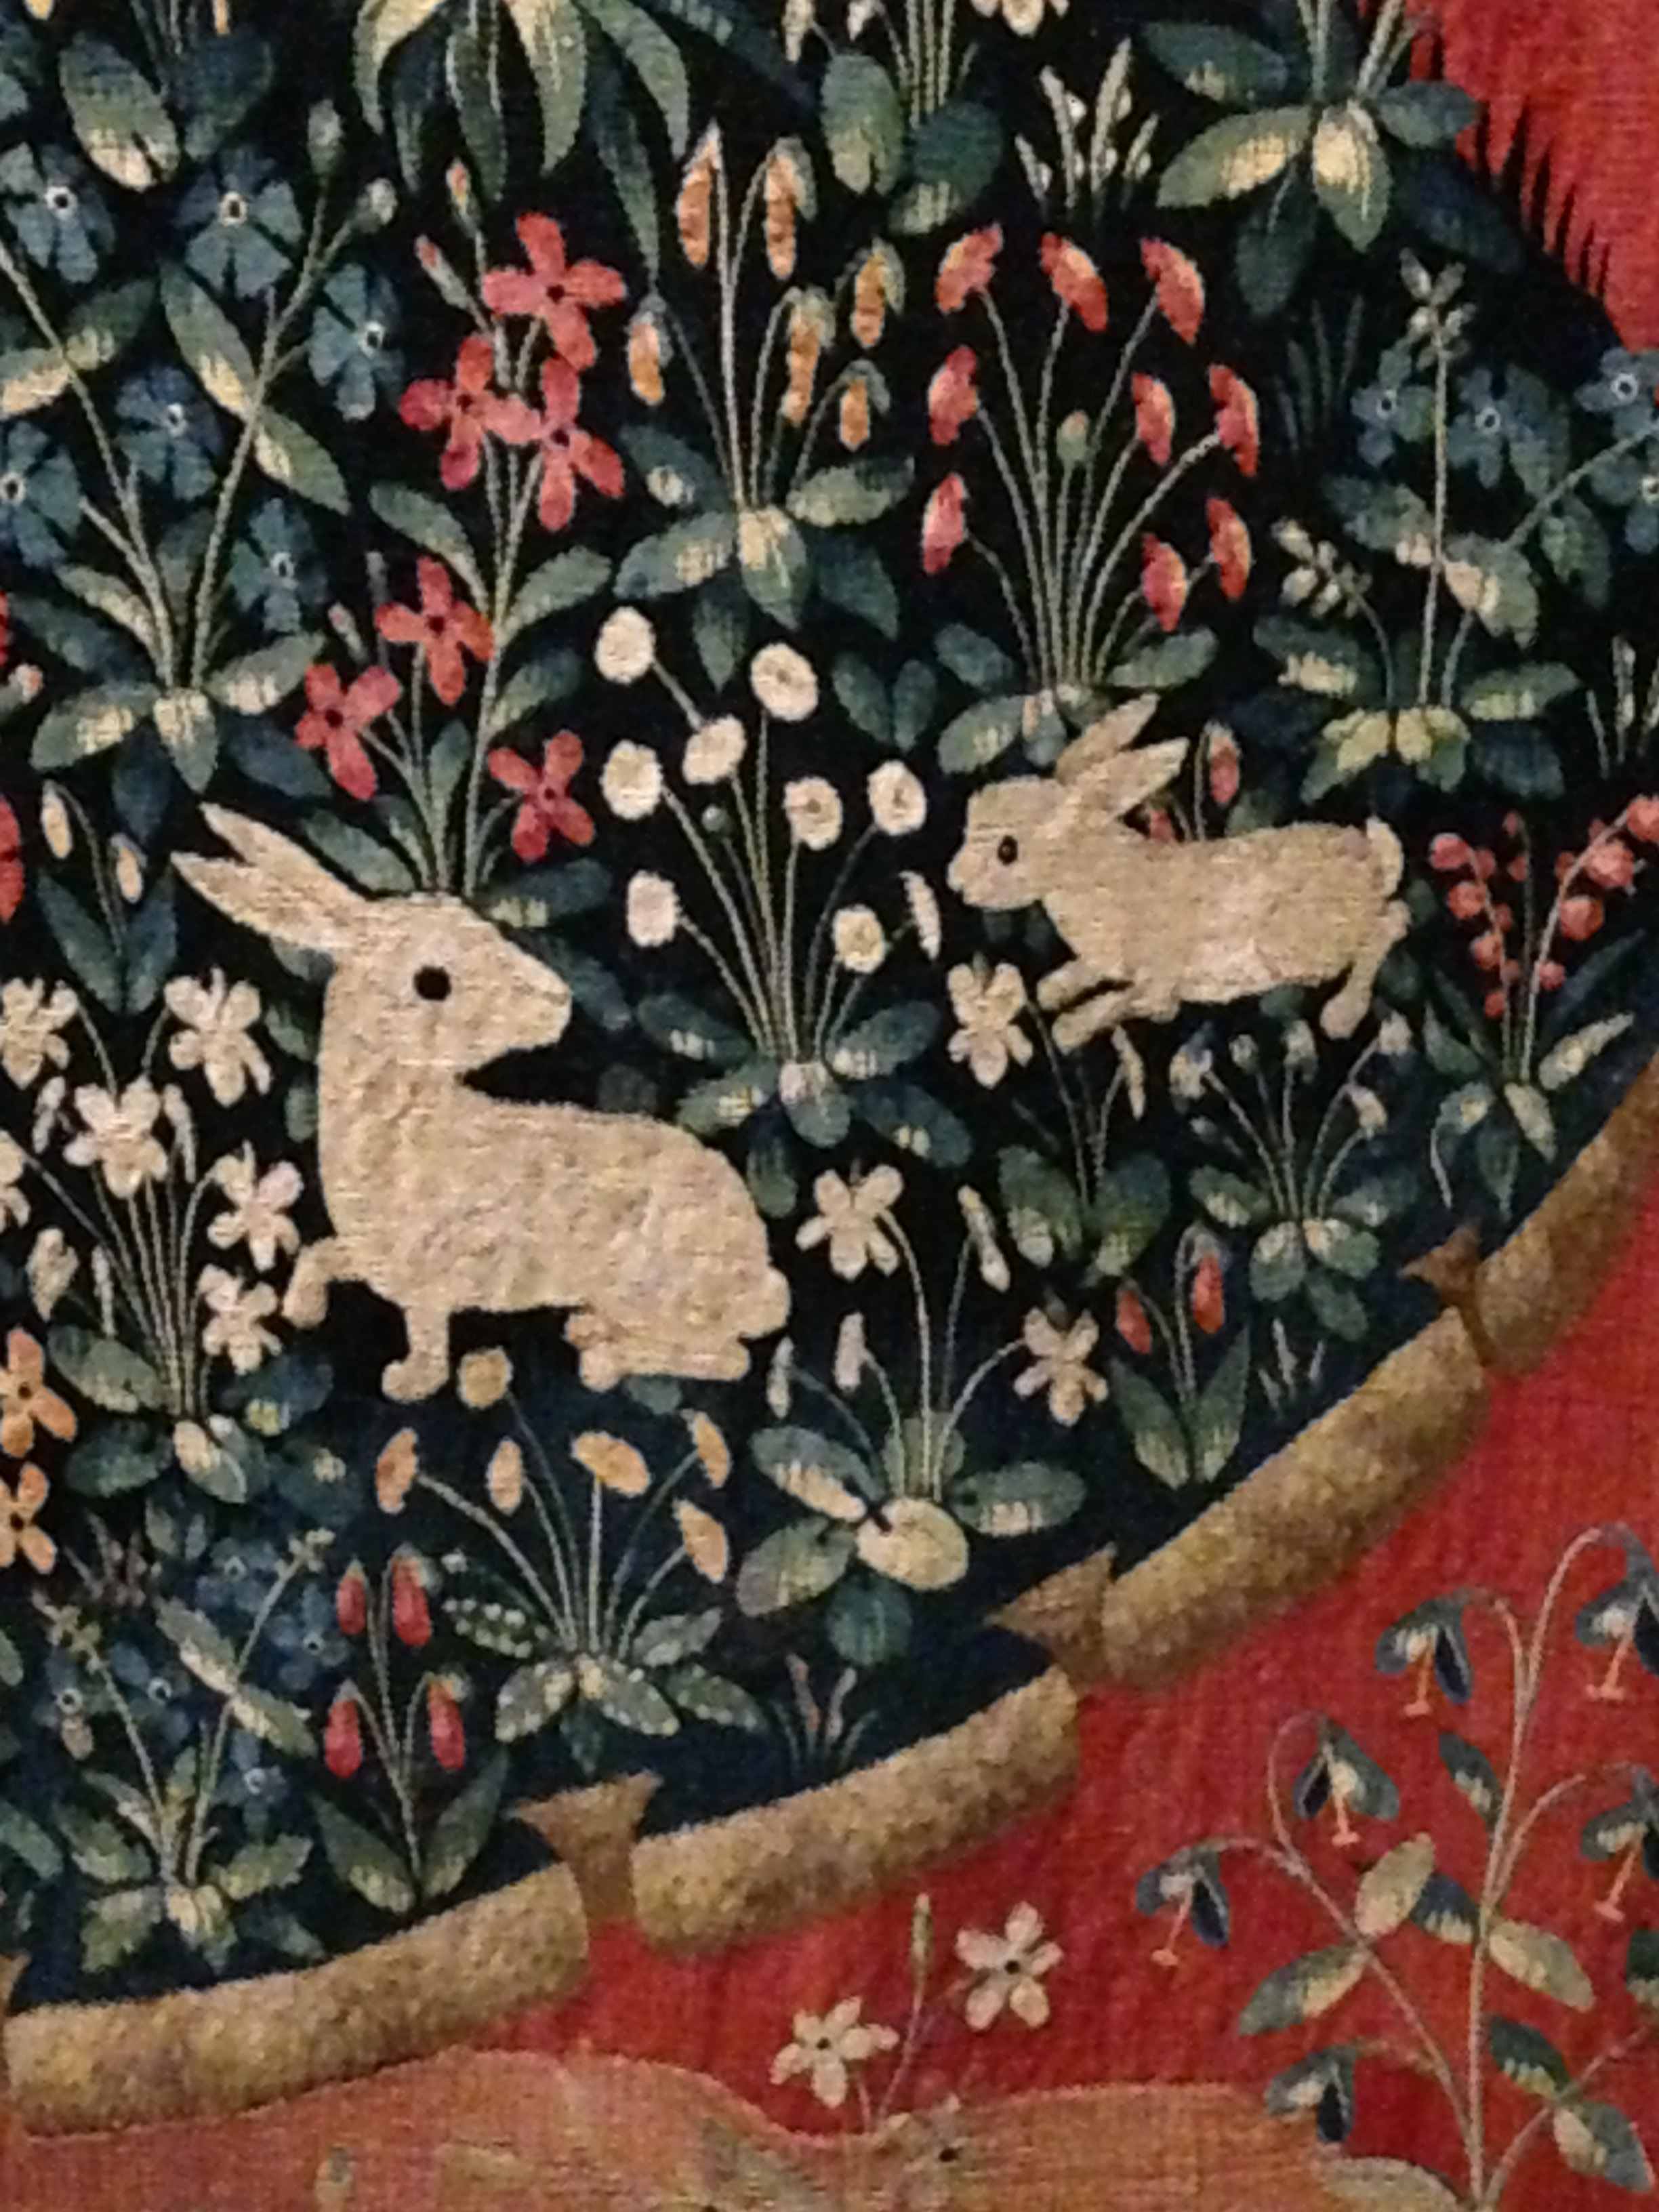 Beautiful little rabbits inhabiting the millefleurs gardens of The Lady and the Unicorn.